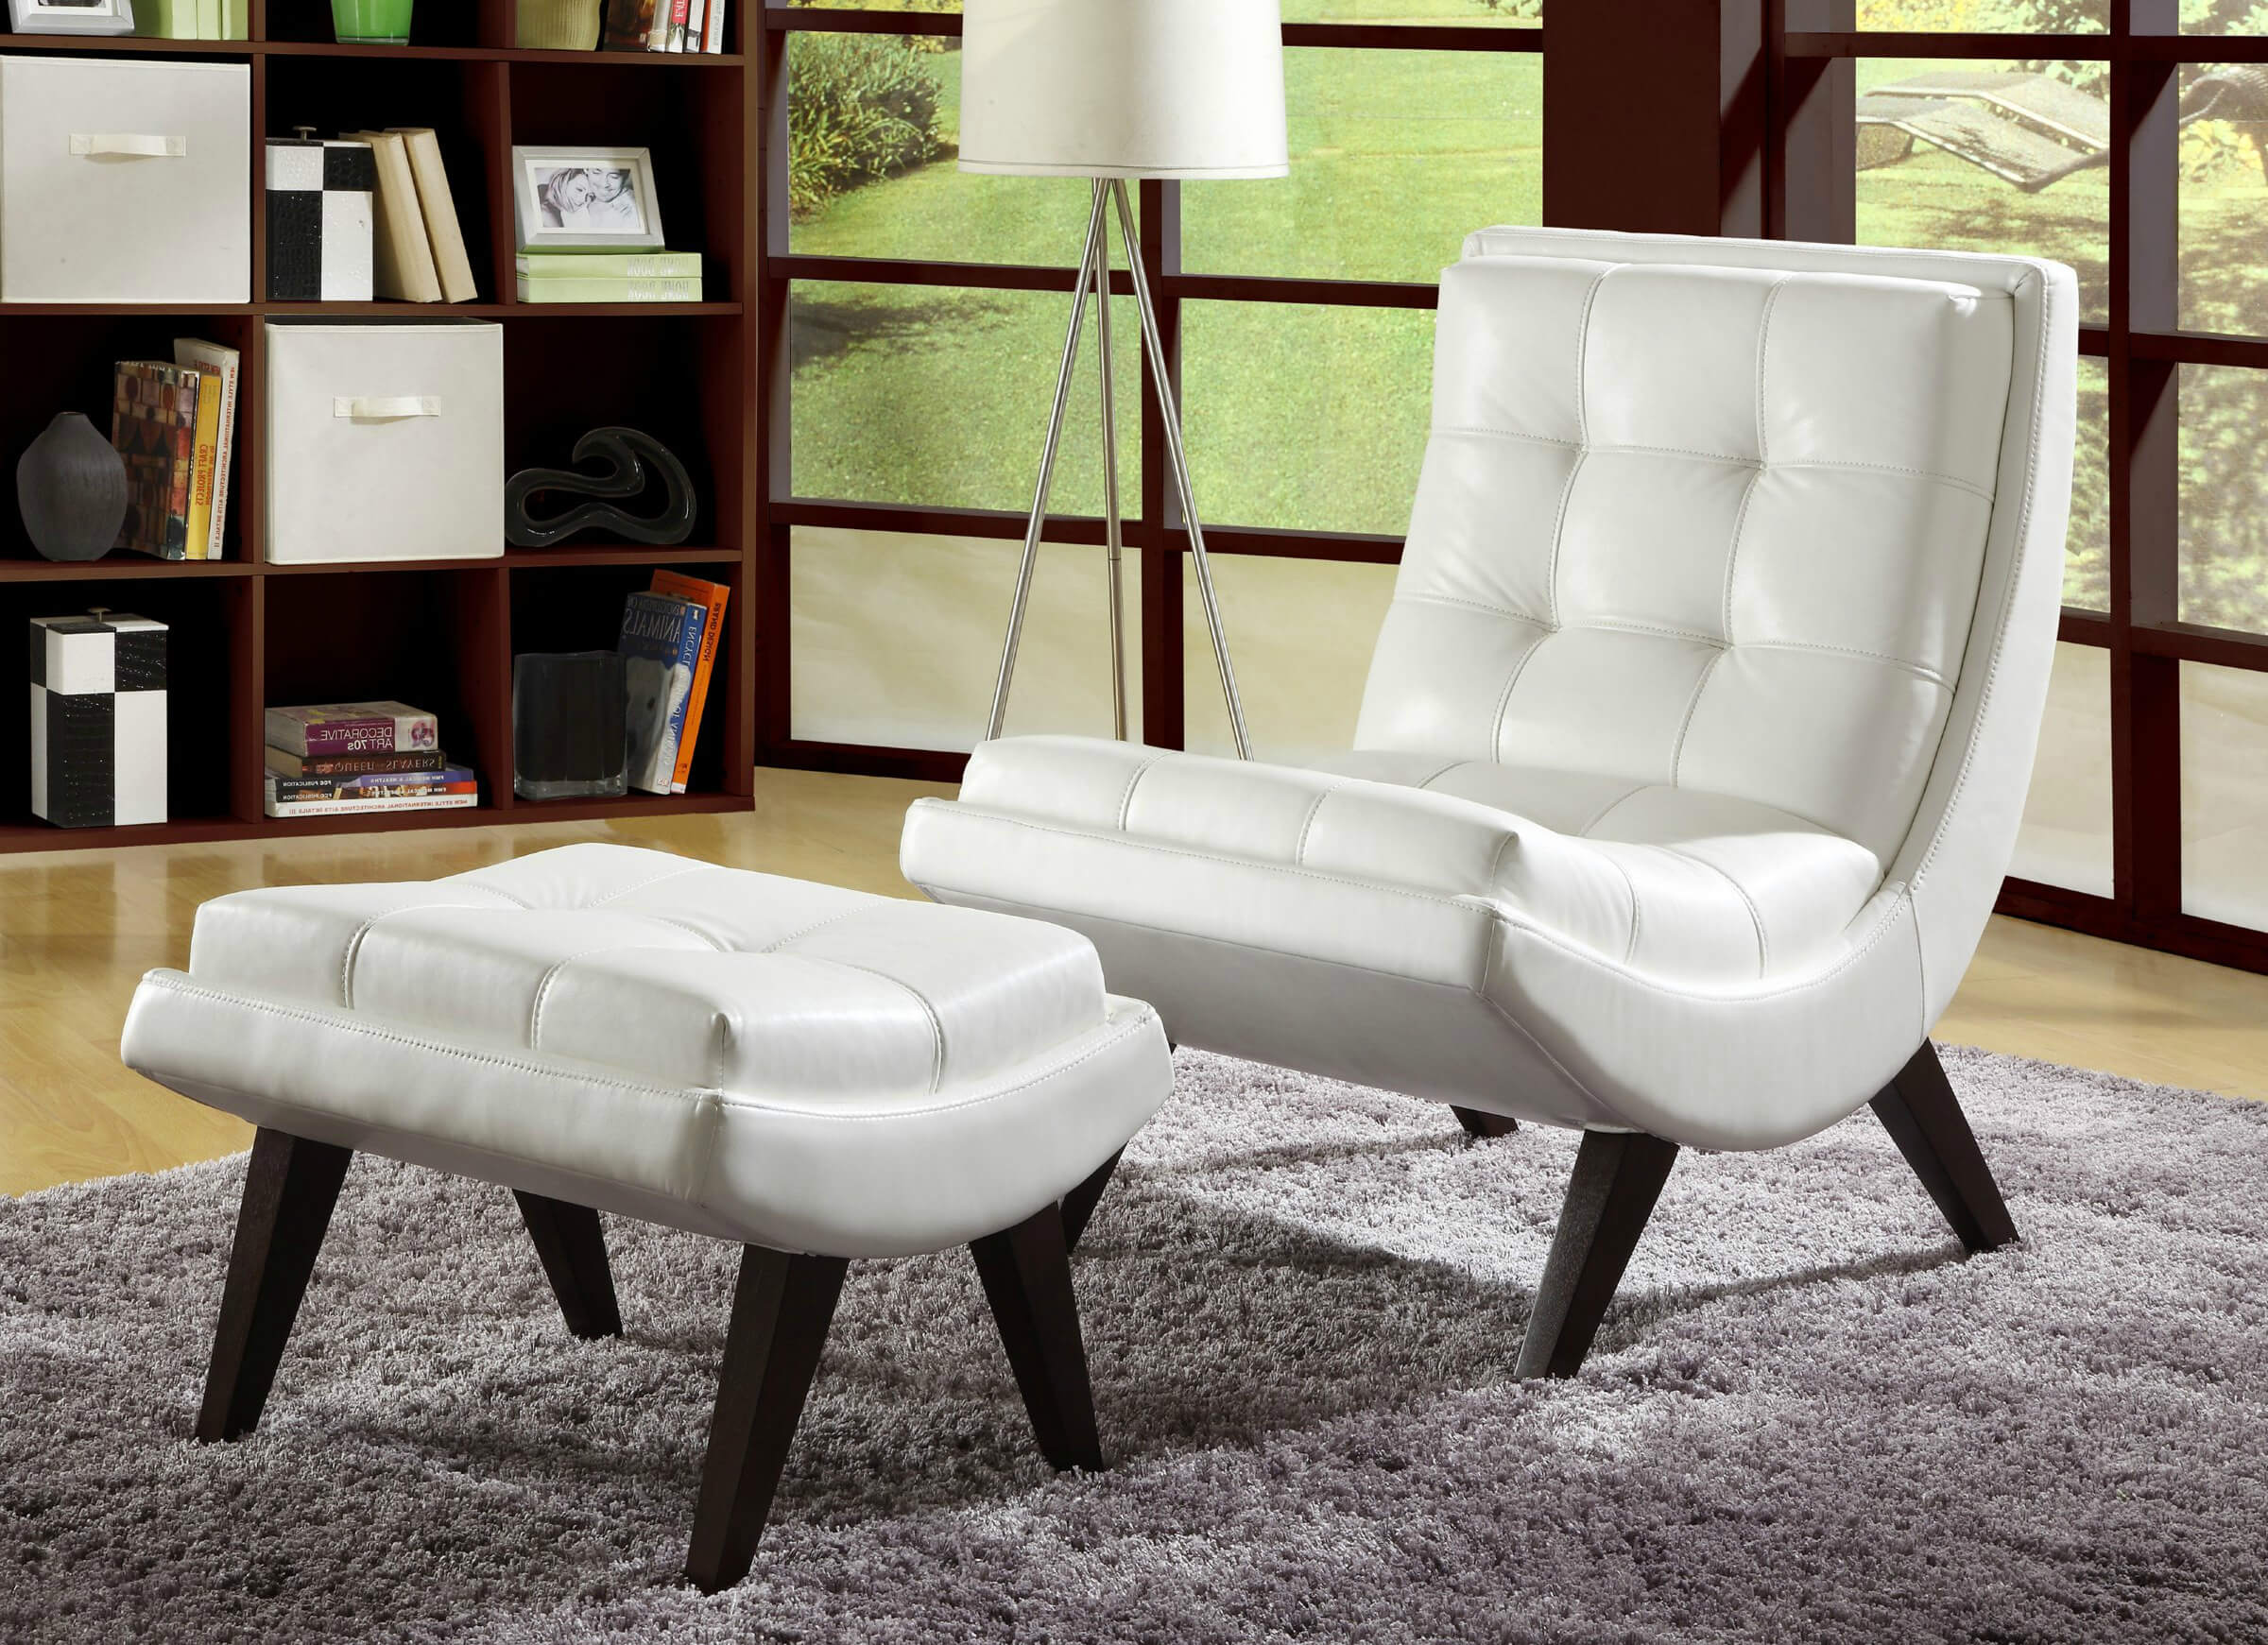 Contemporary accent chair paired with ottoman comes in white faux leather with button tufting in curved arch, modernist design. Hardwood construction and tapered dark legs keep it durable and classy.